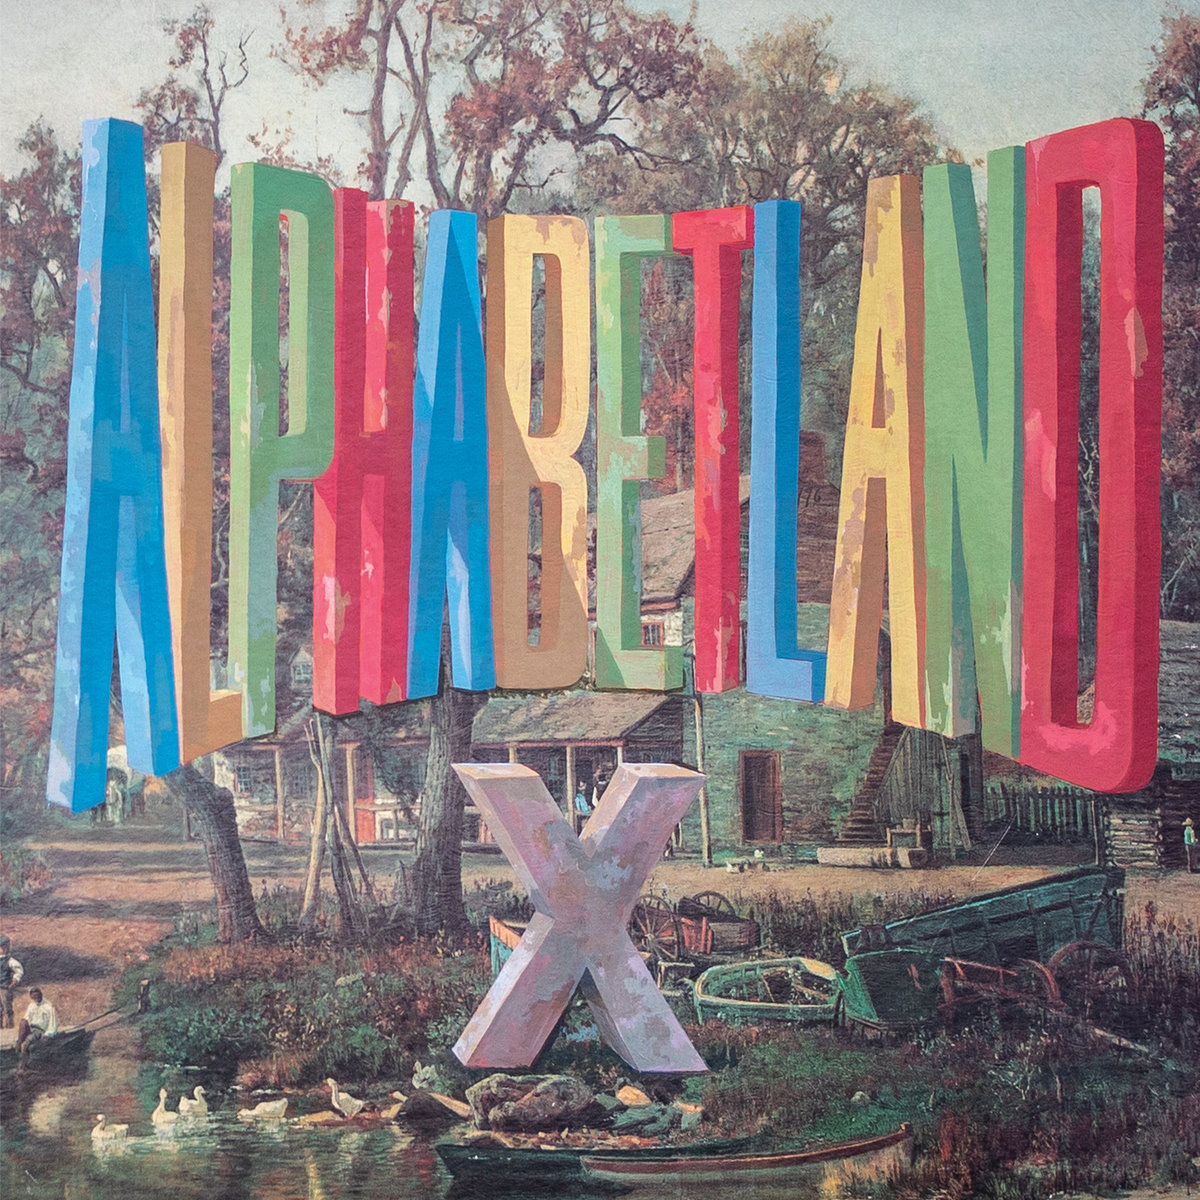 Alphabetland by X album artwork cover art